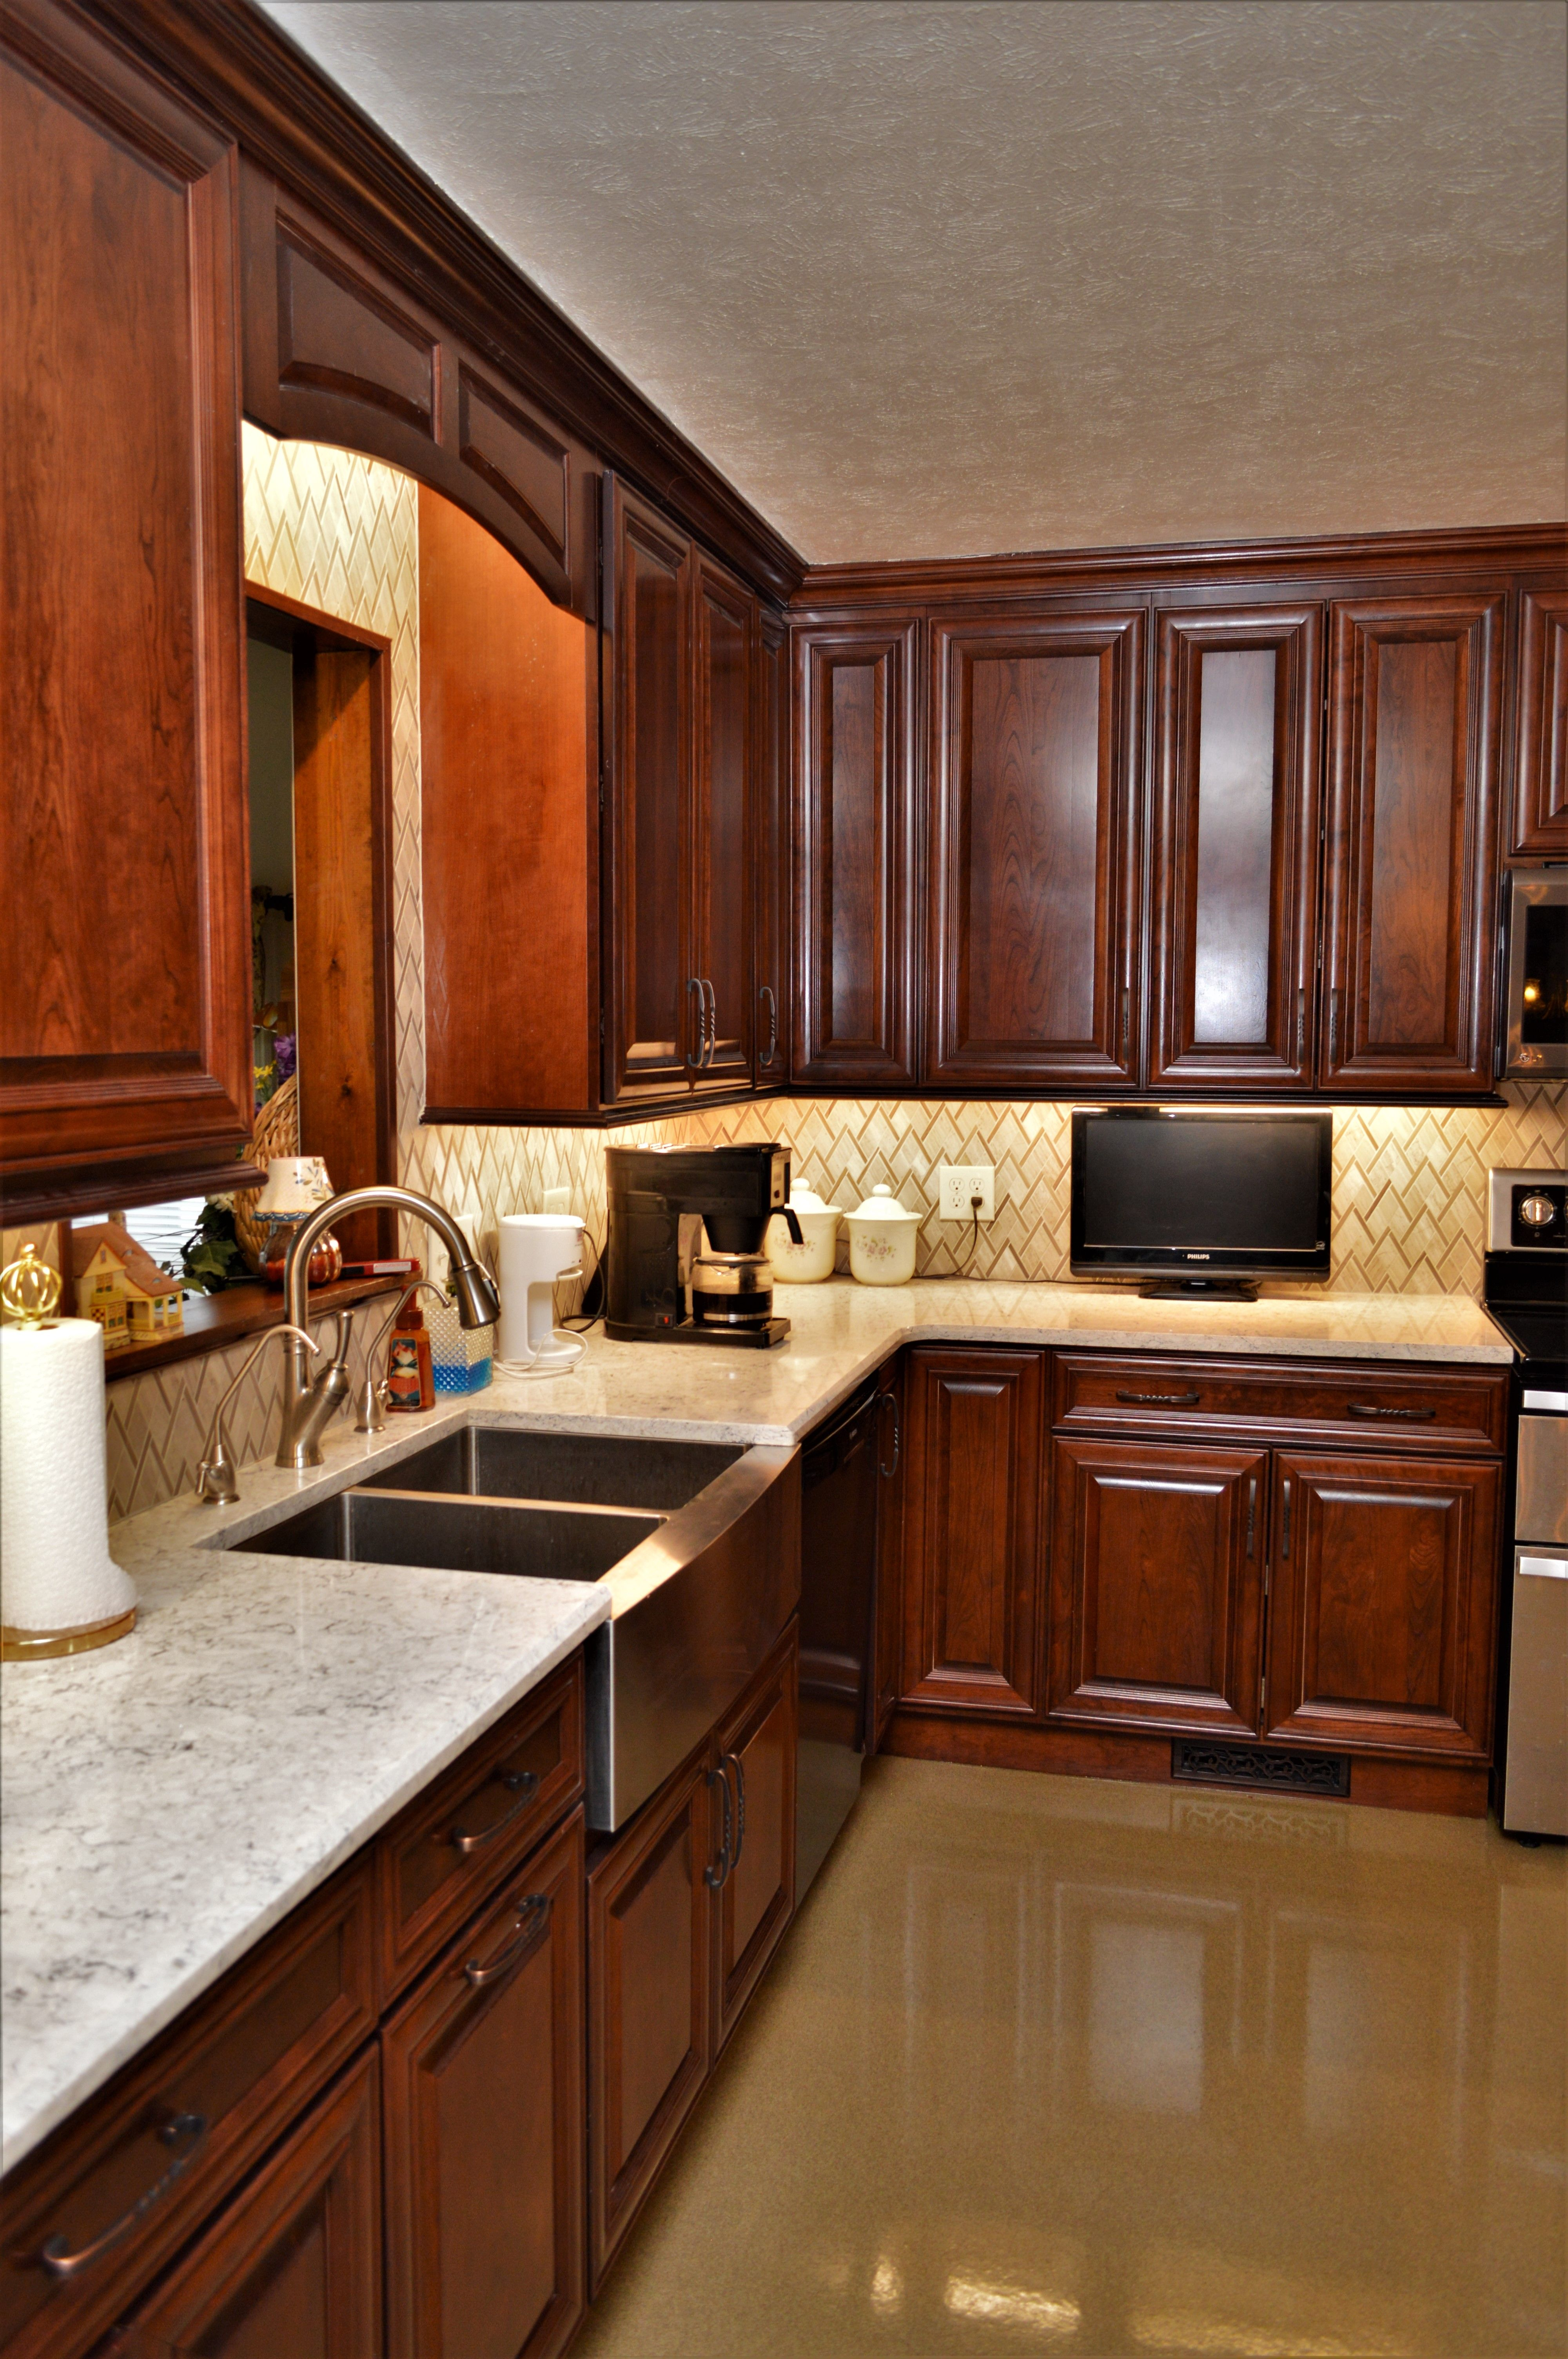 Cabinet Brand Haas Signature Collection Wood Species Cherry Cabinet Finish Bourbon Disc Kitchen Cabinet Design Cherry Cabinets Kitchen Home Decor Kitchen